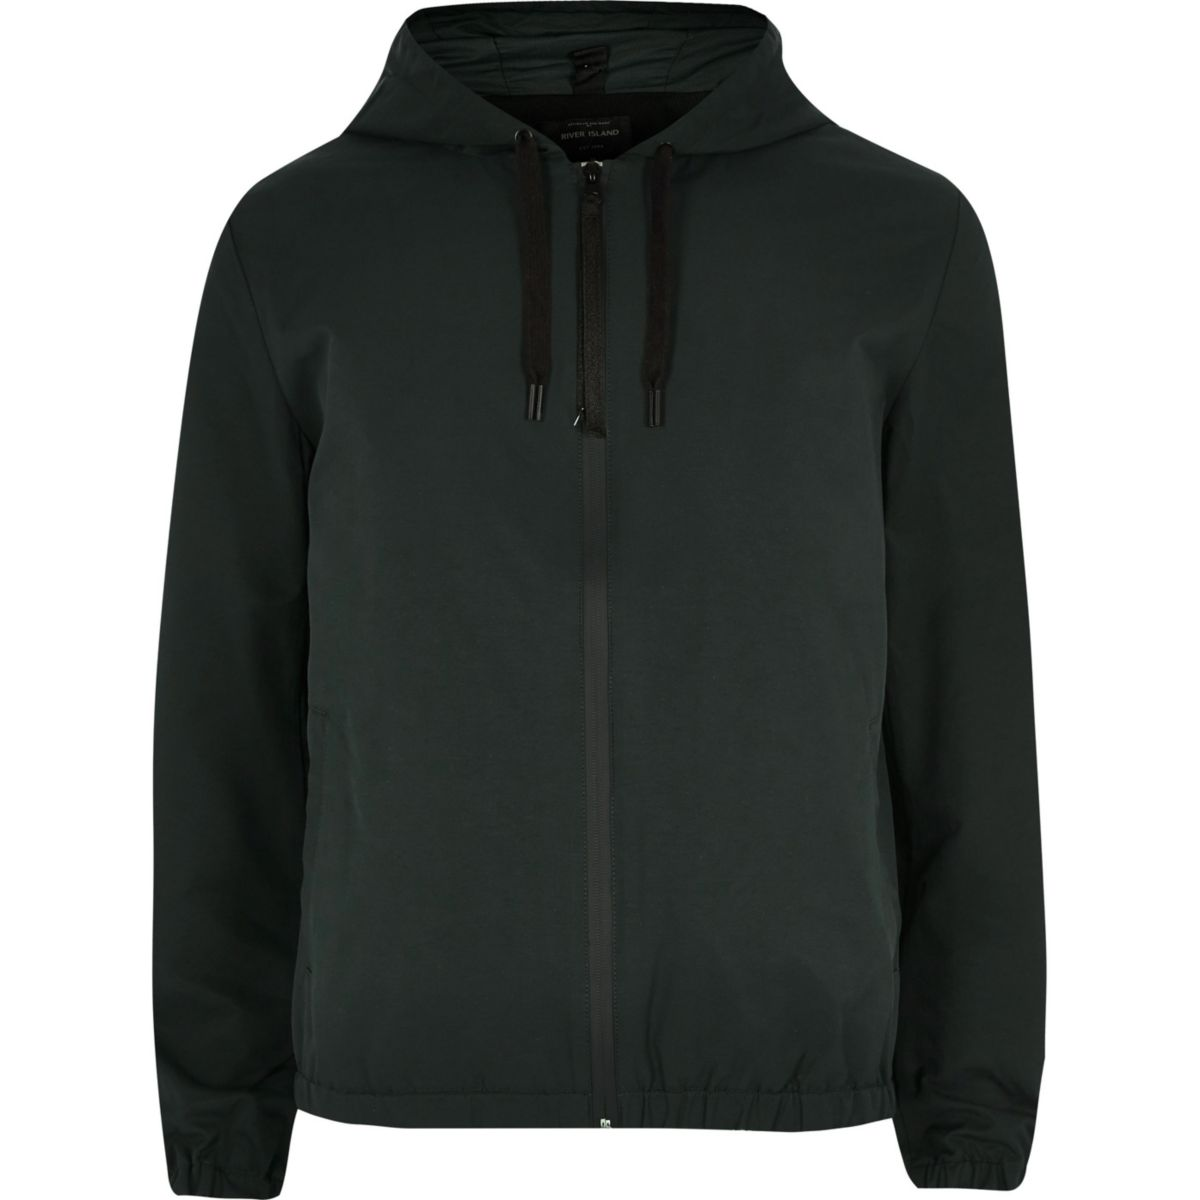 Green casual hooded jacket